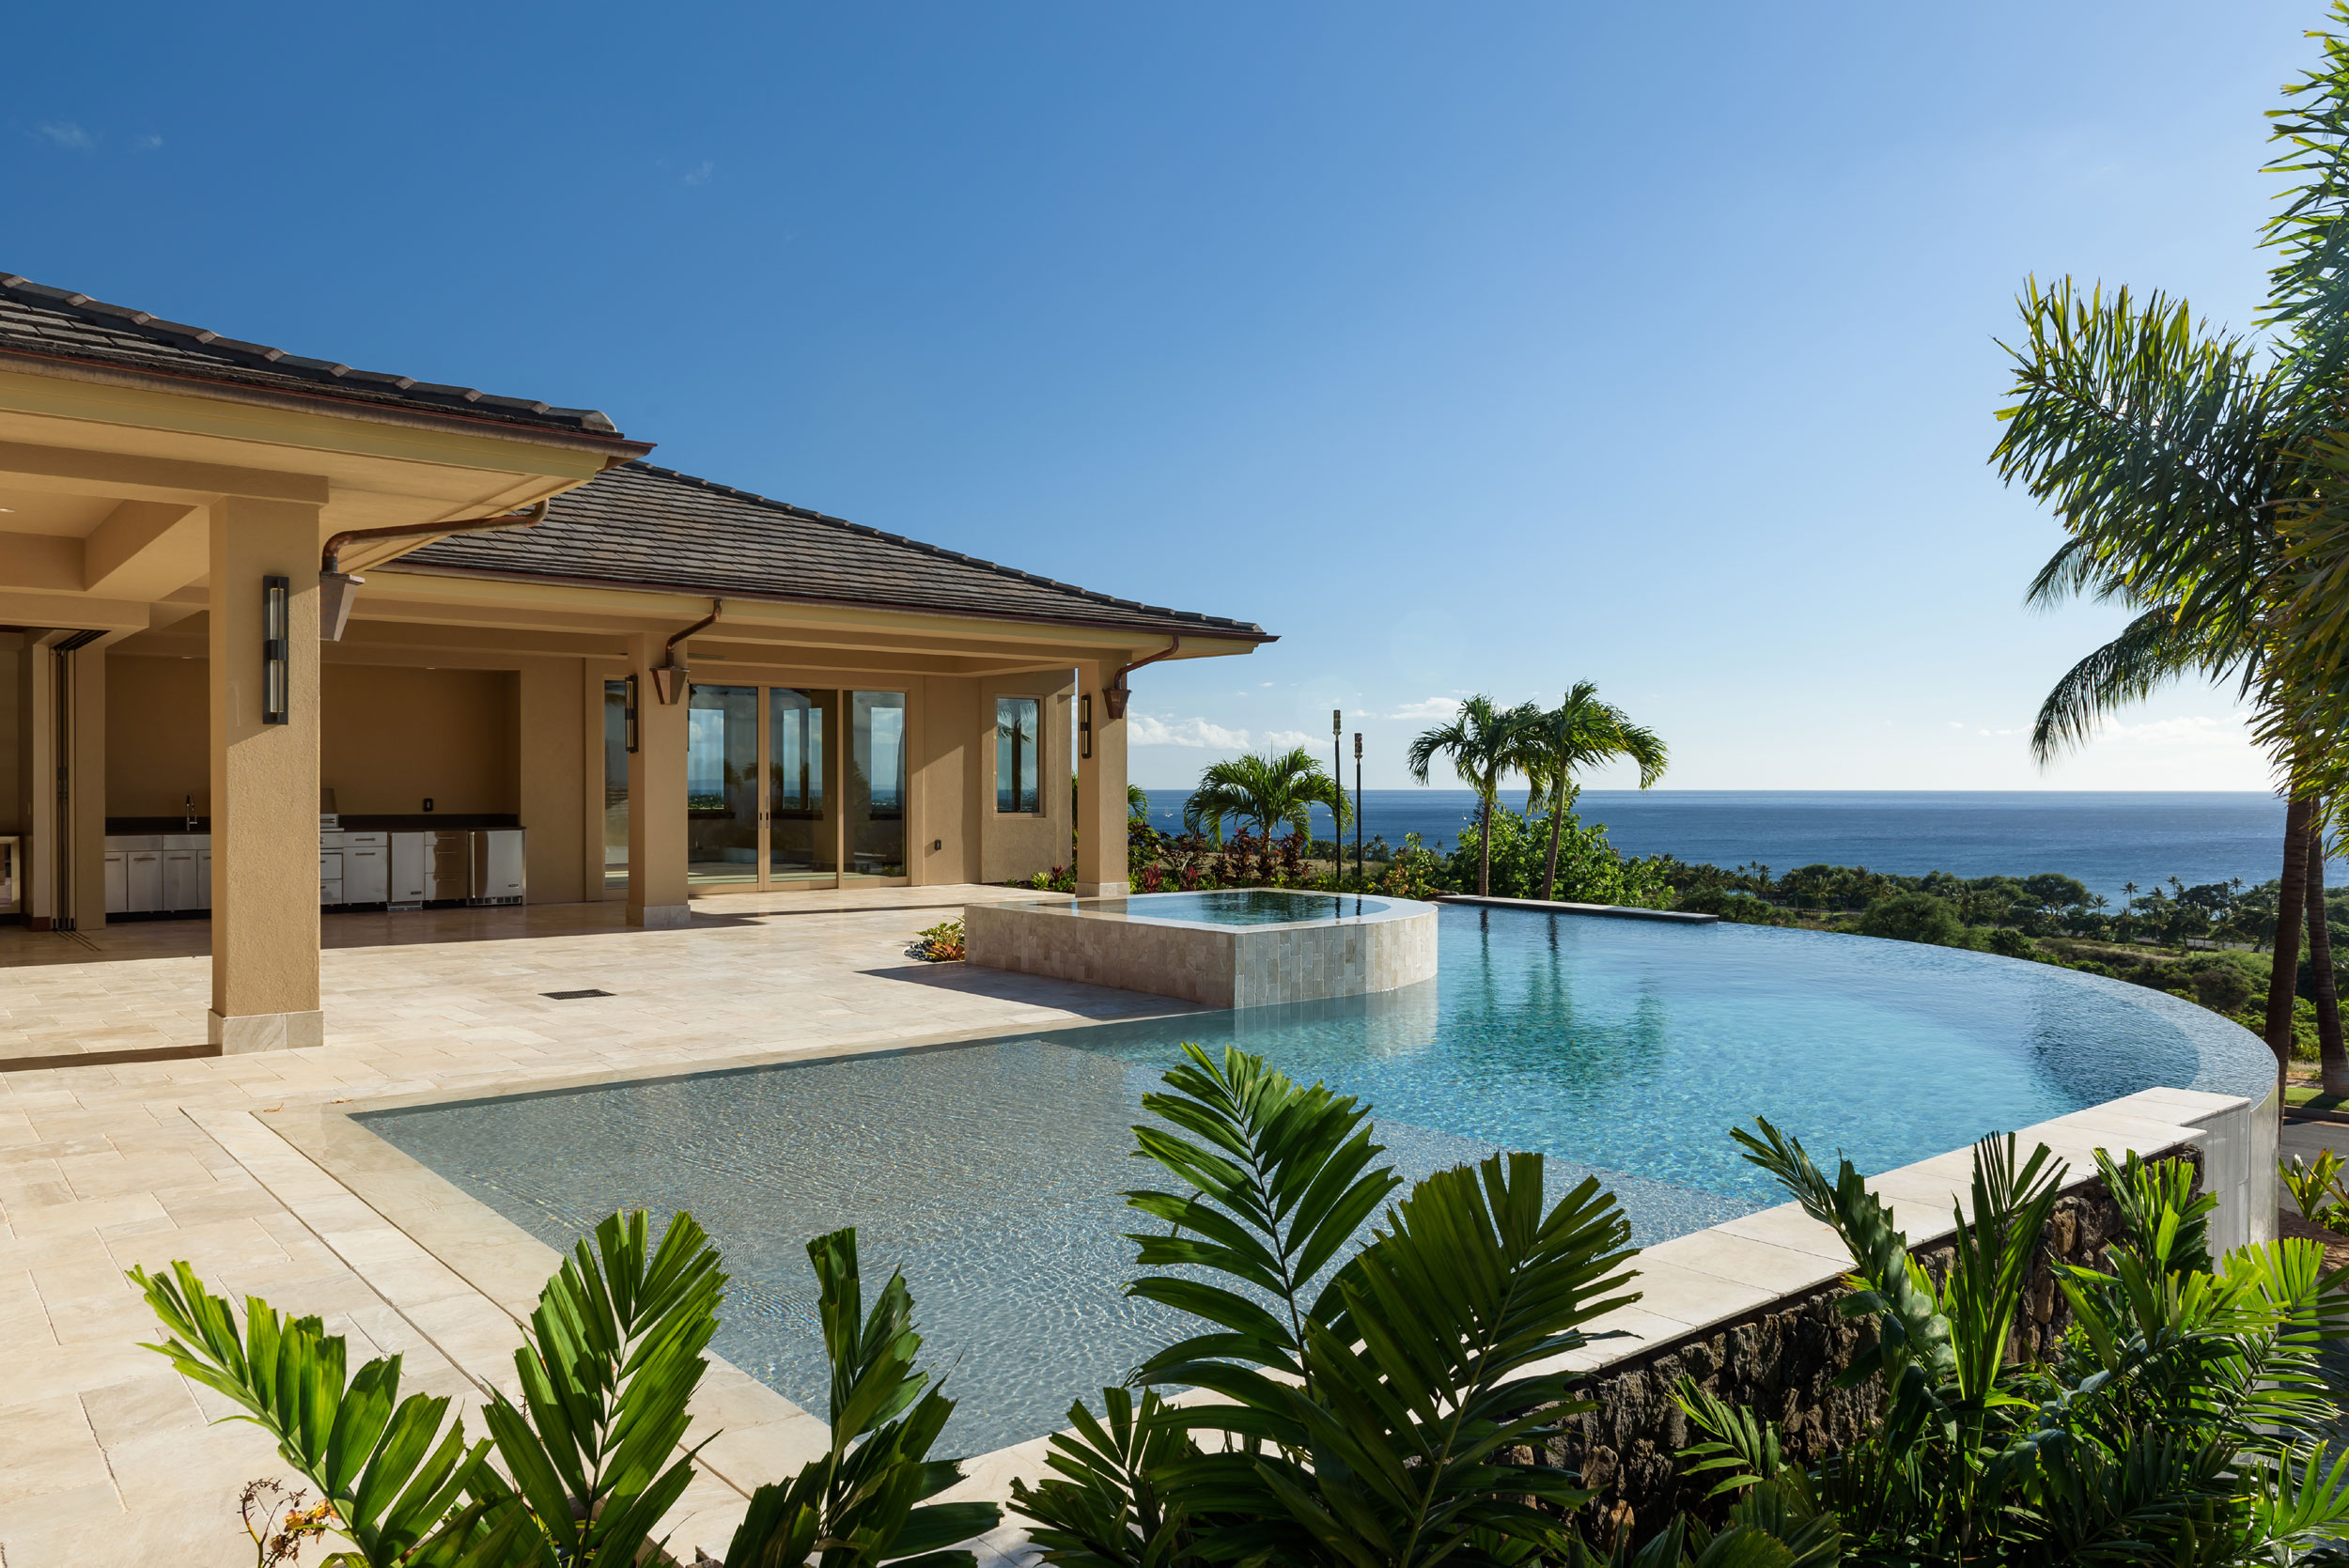 Lanikeha, the finest subdivision in Kaanapali Golf Estates, features a clubhouse, pool, and fitness center, as well as access to the Kaanapali resort's championship golf courses.